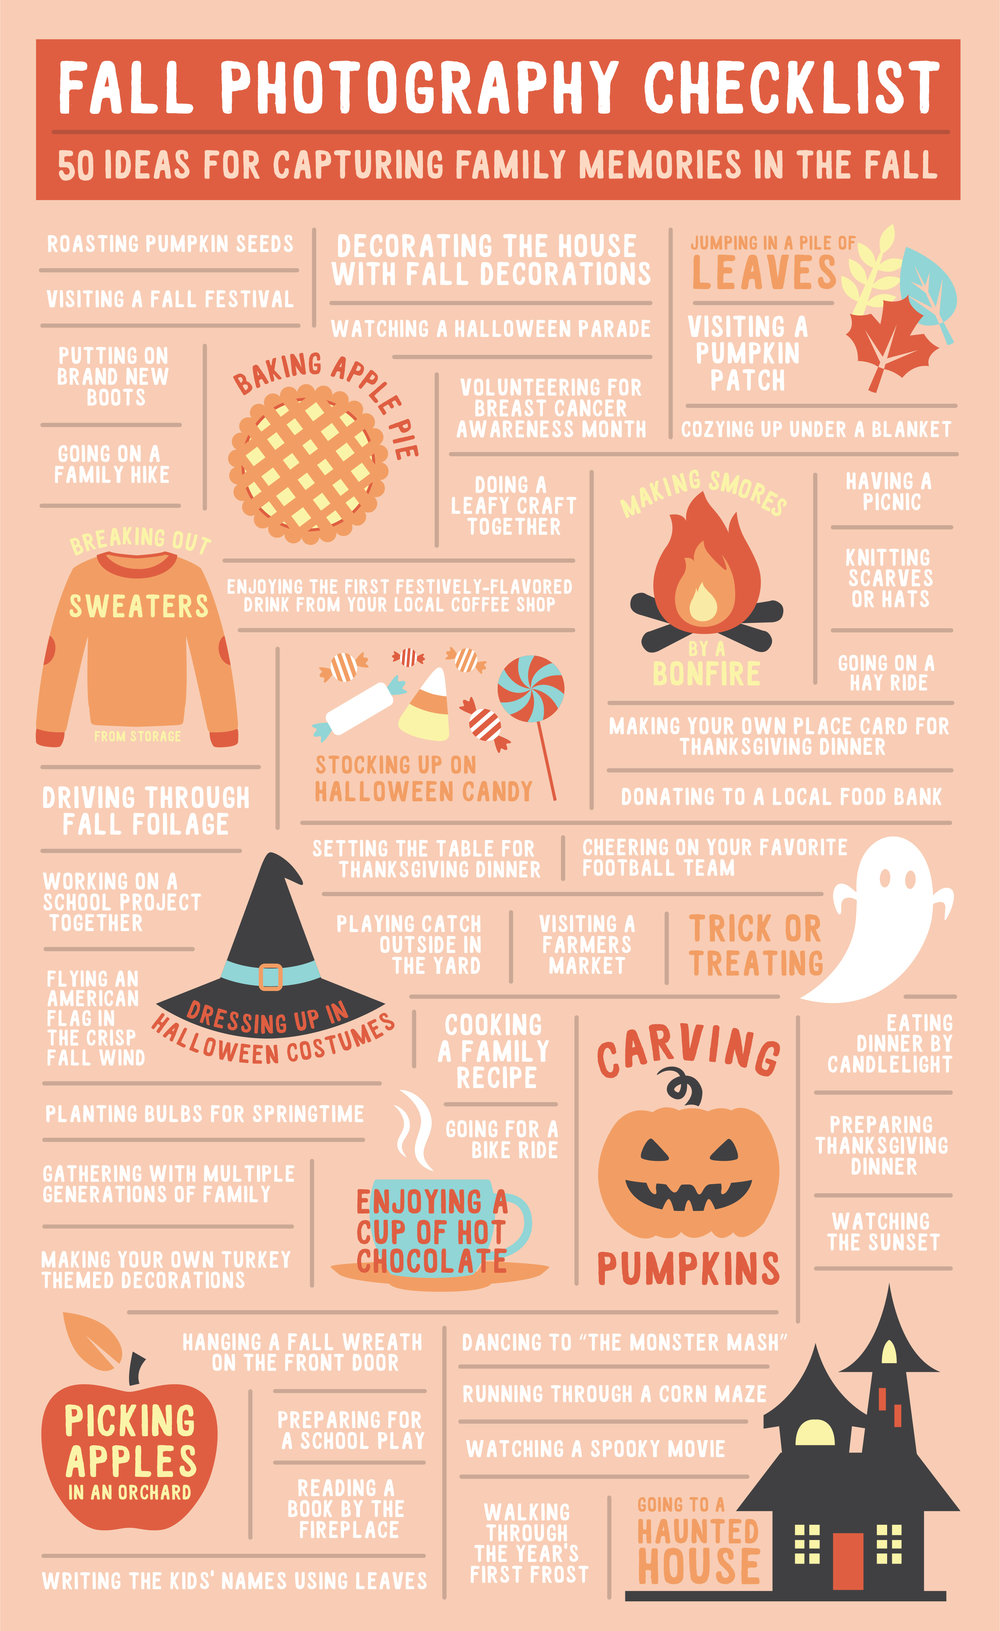 Fall Photography Checklist